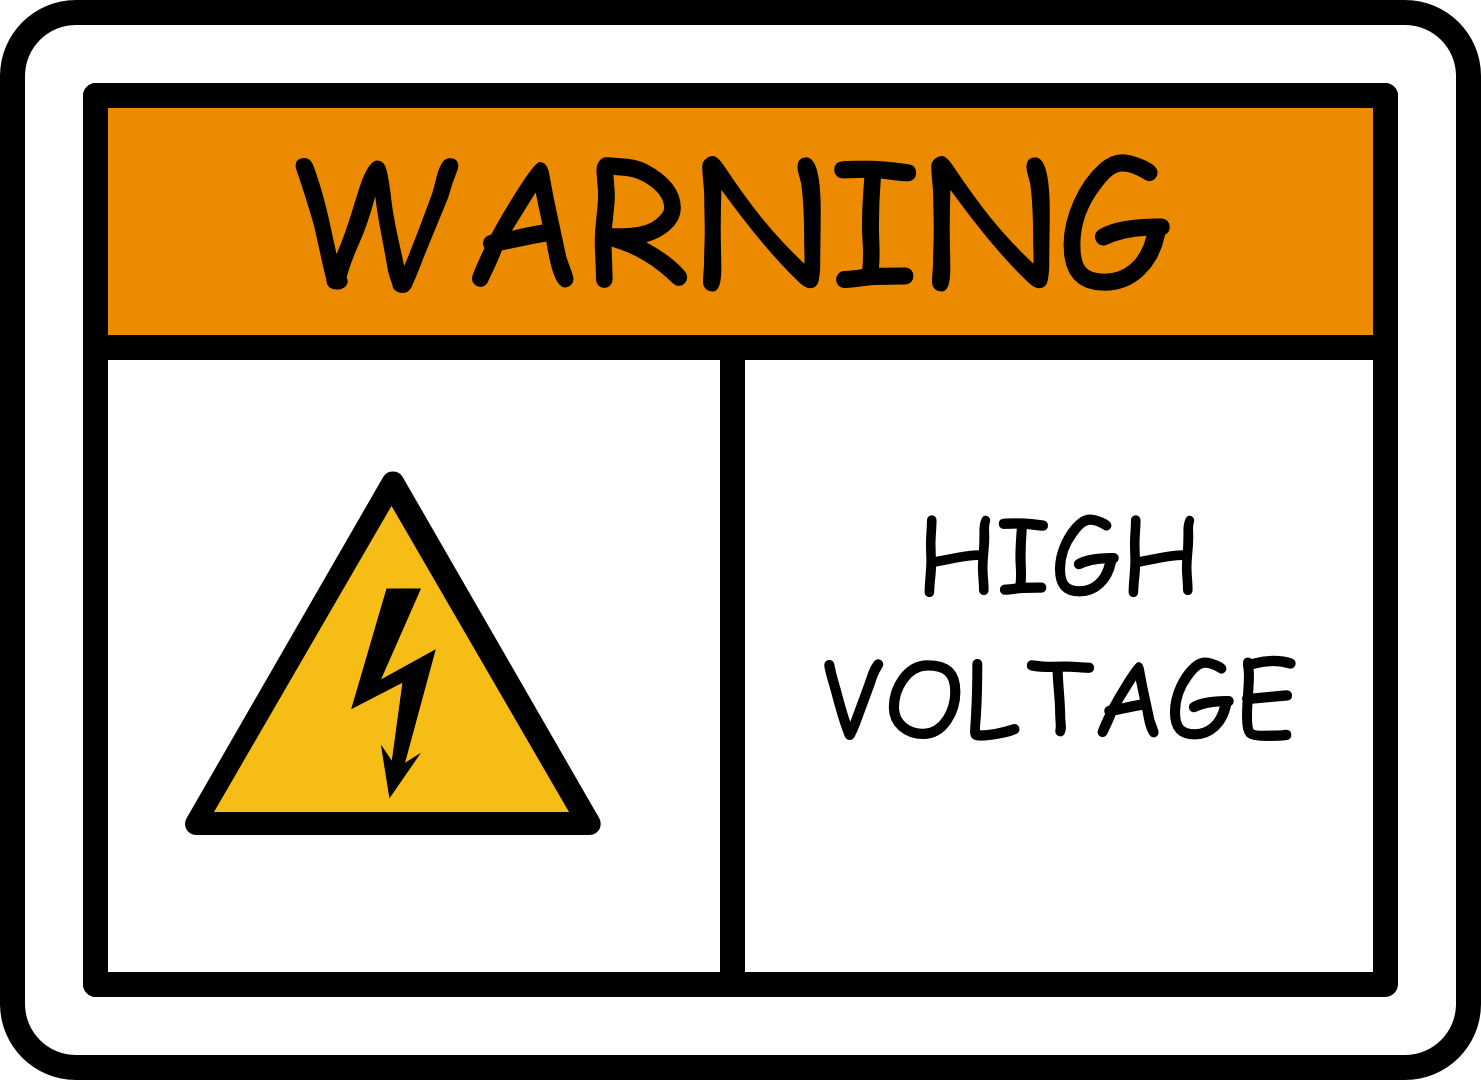 misuse of comic sans on warning - high voltage sign